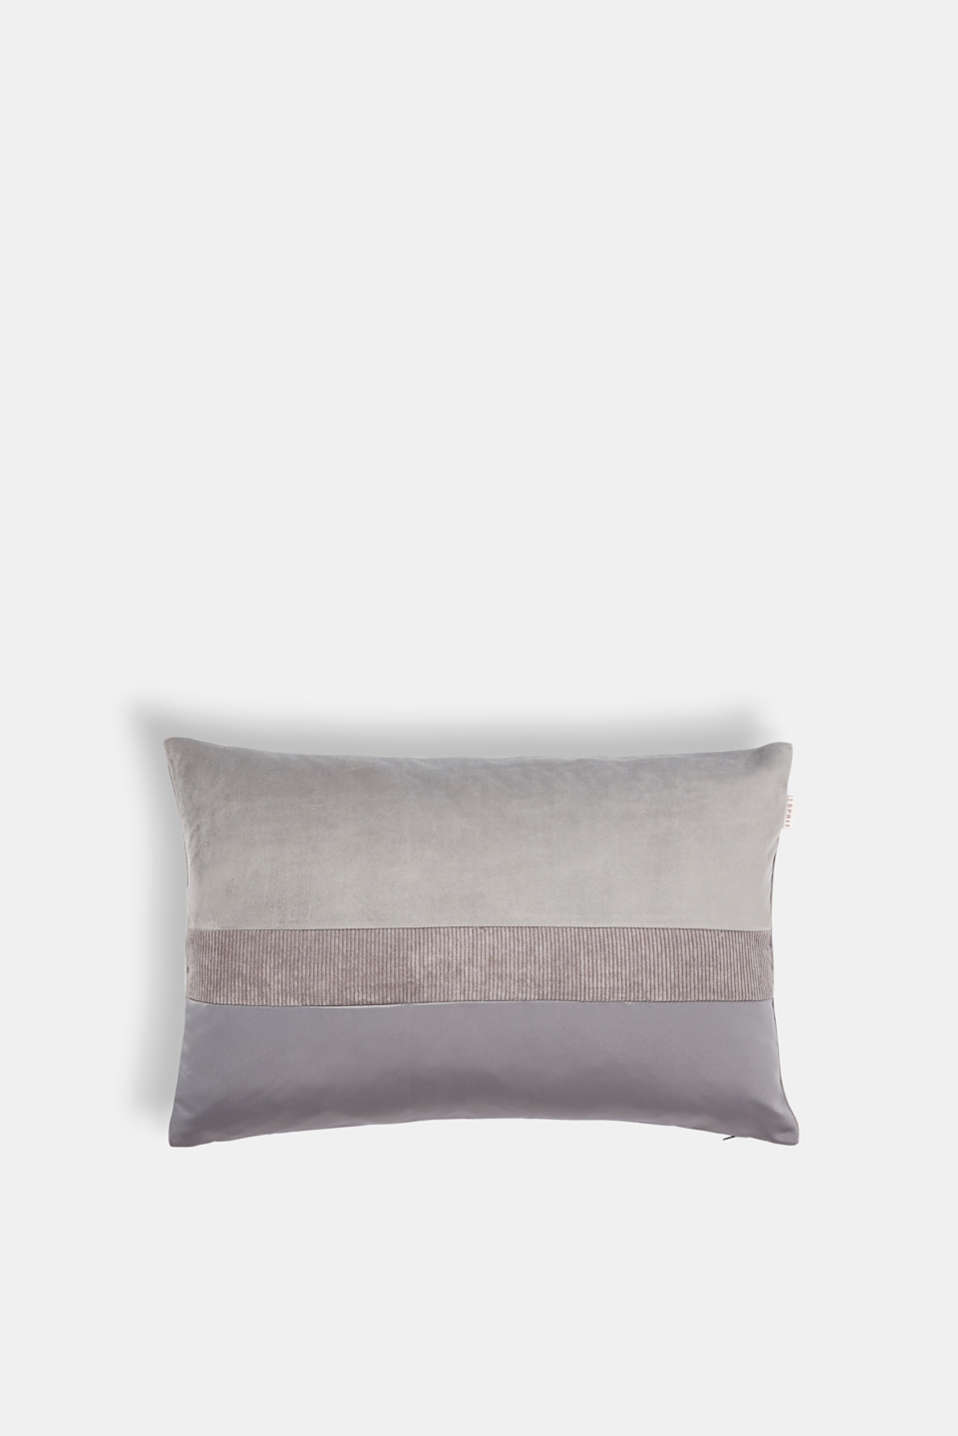 Esprit - Cushion cover made of corduroy velvet